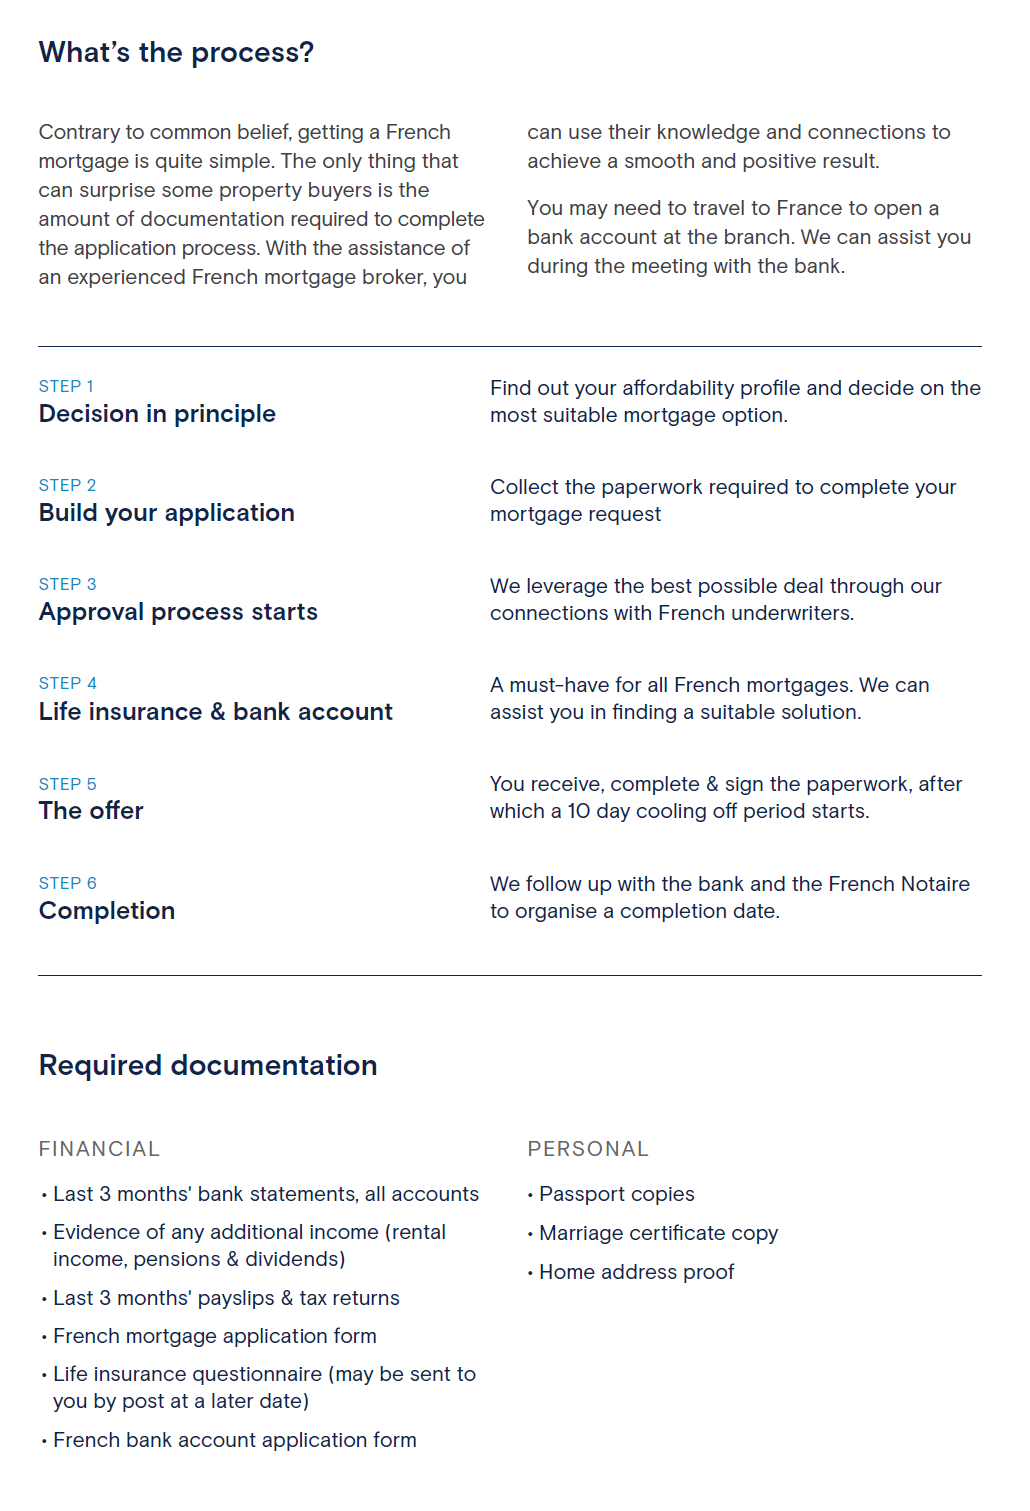 French Mortgage Process